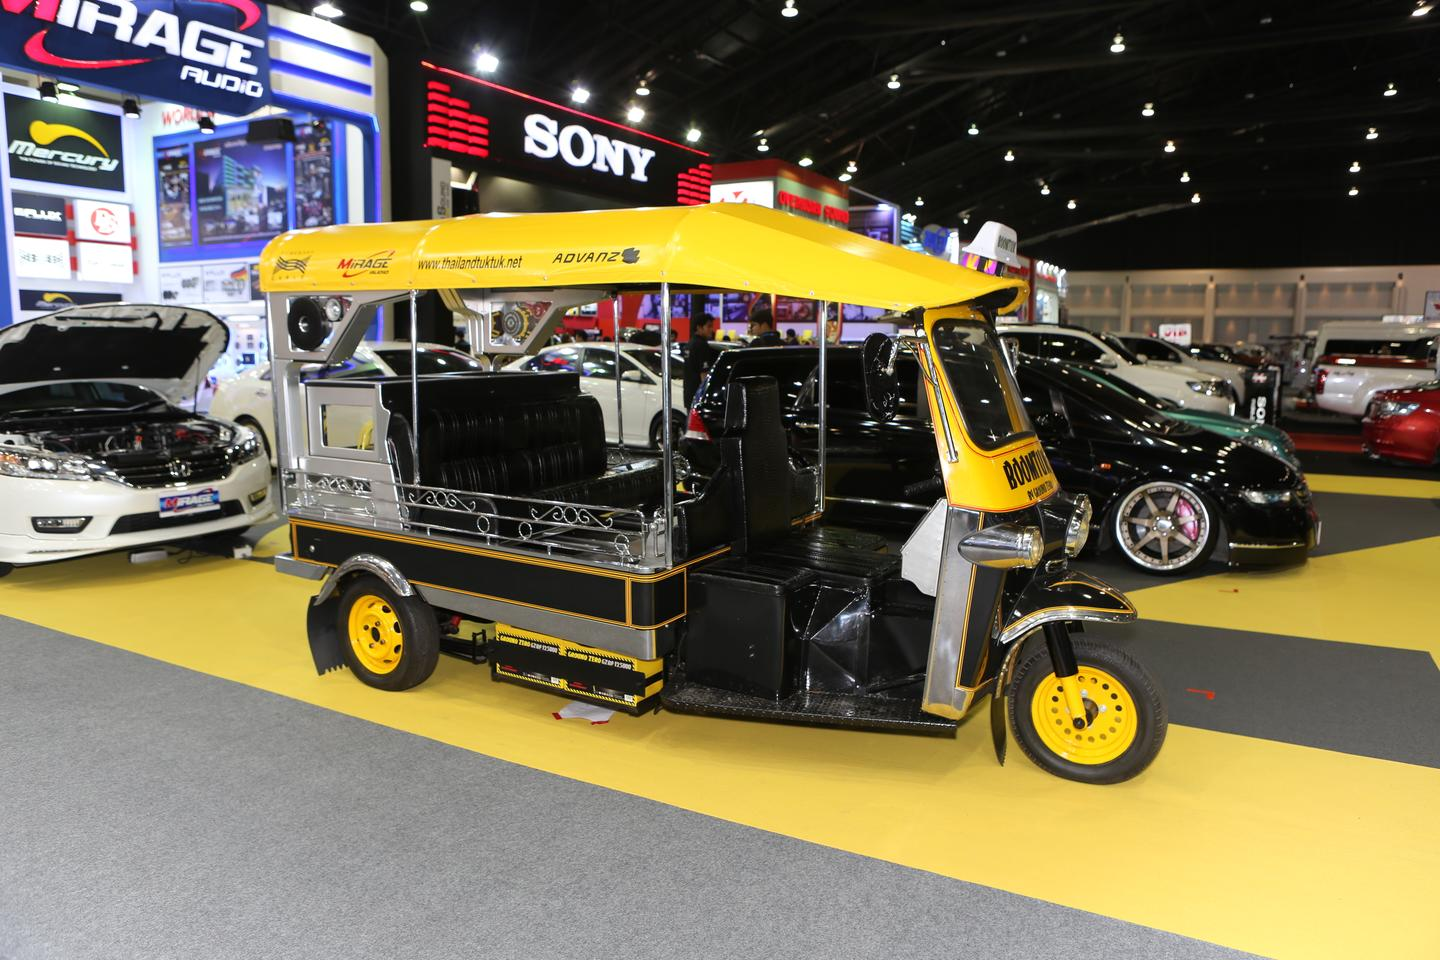 A pimped out tuk-tuk with a massive sound system at the Thai Motor Expo